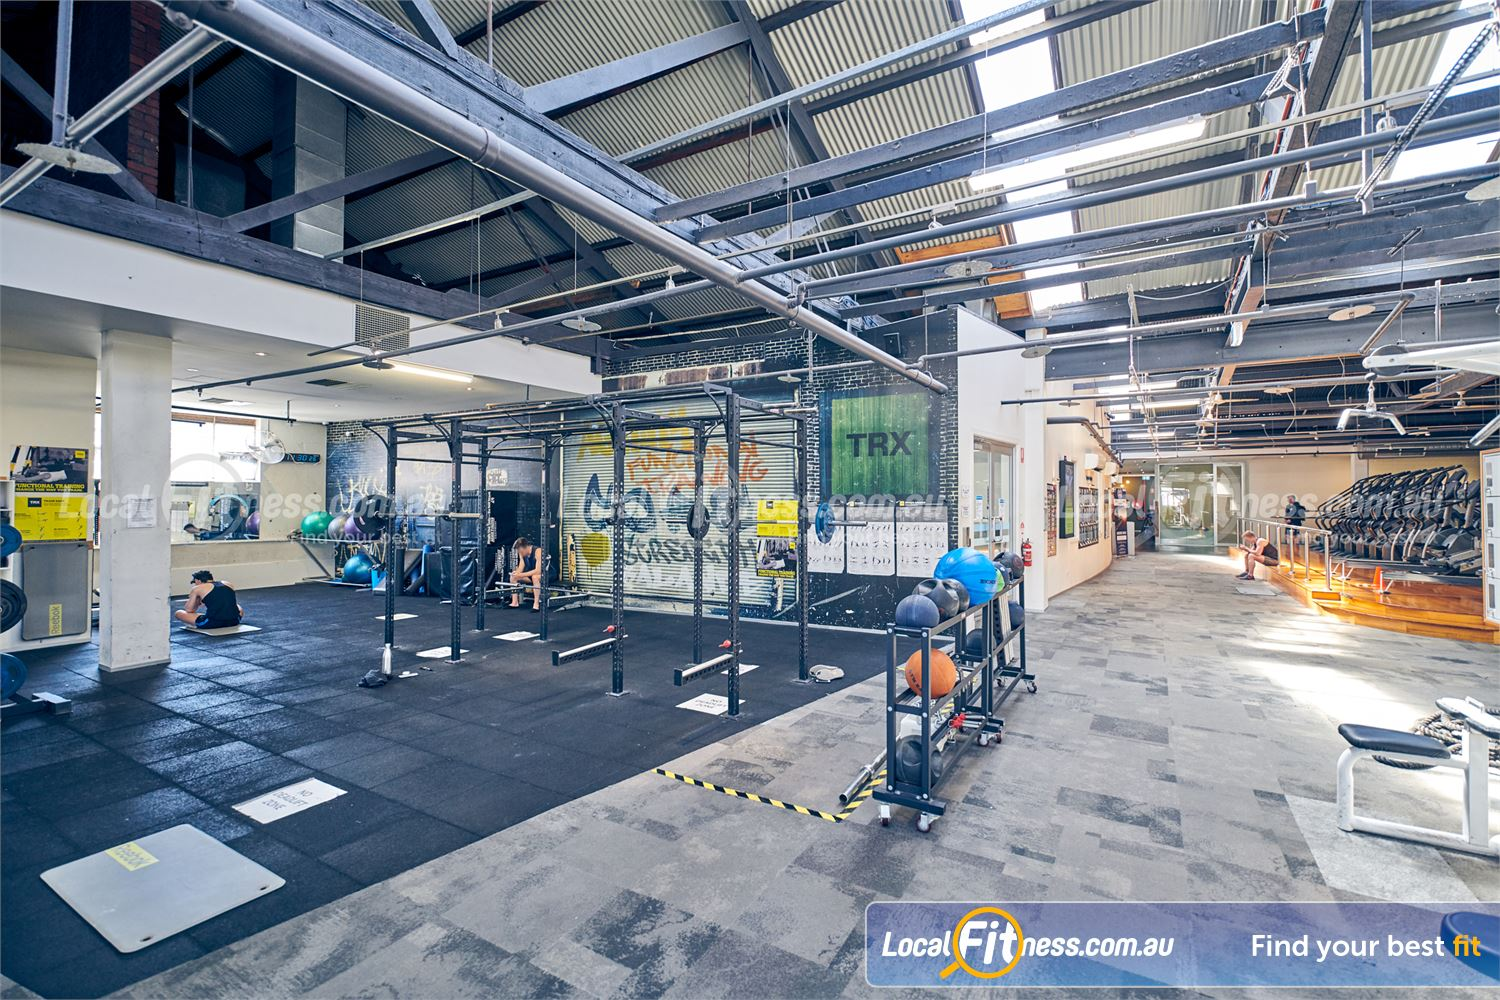 Goodlife Health Clubs Near St Kilda Our functional training area is fully equipped with a strength matrix.